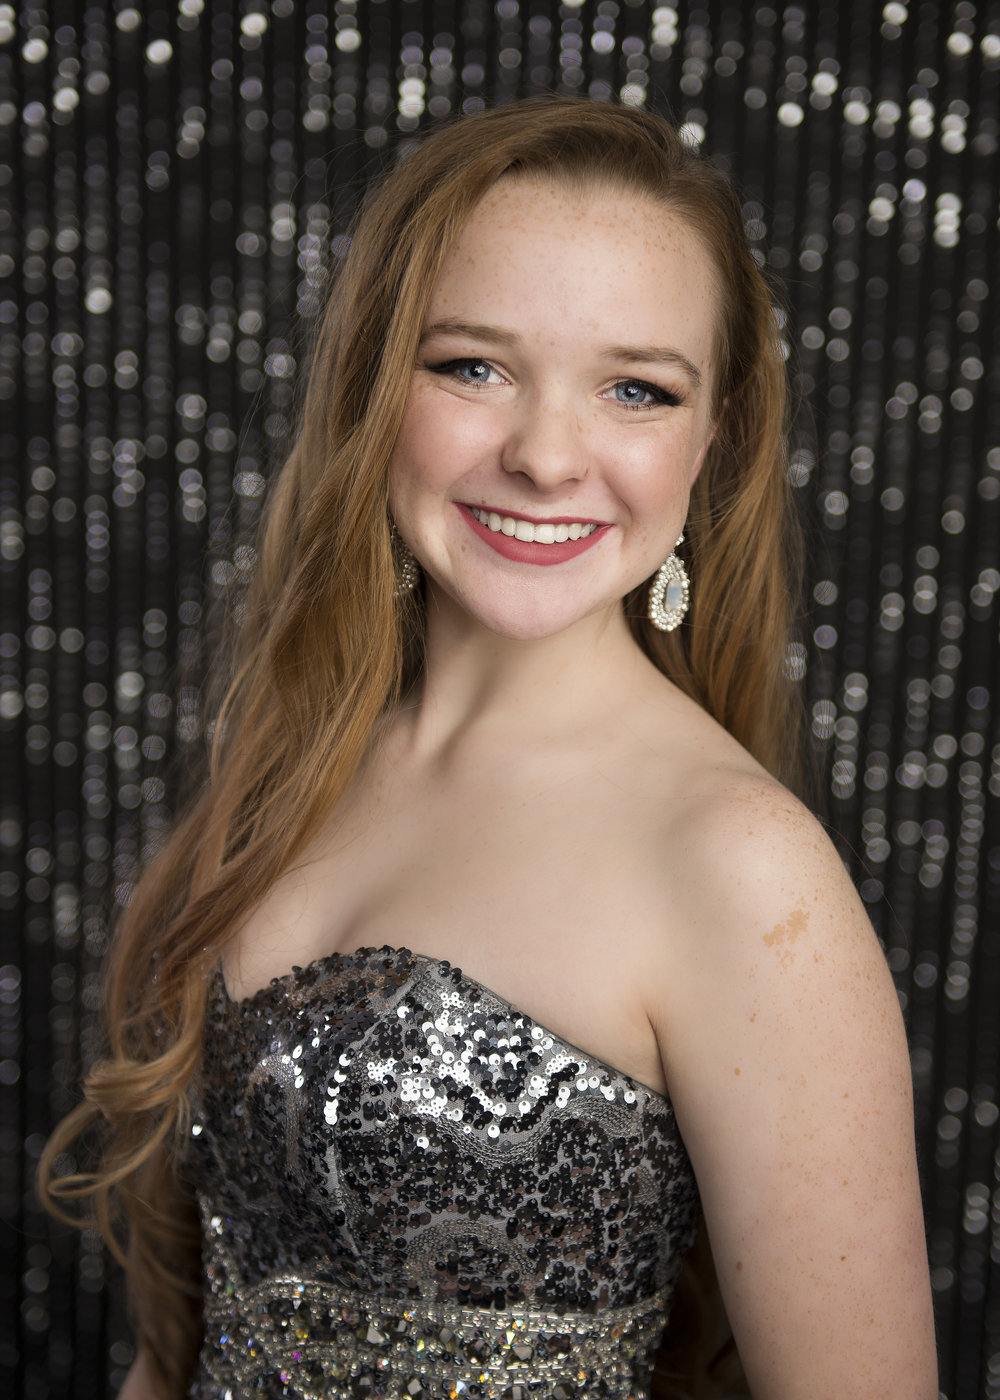 CLARA ROSE TYREL    Heart of New York's Outstanding Teen   Talent:     Bagpipes   Platform:  Save A Life: Volunteer for Your Local Emergency Services